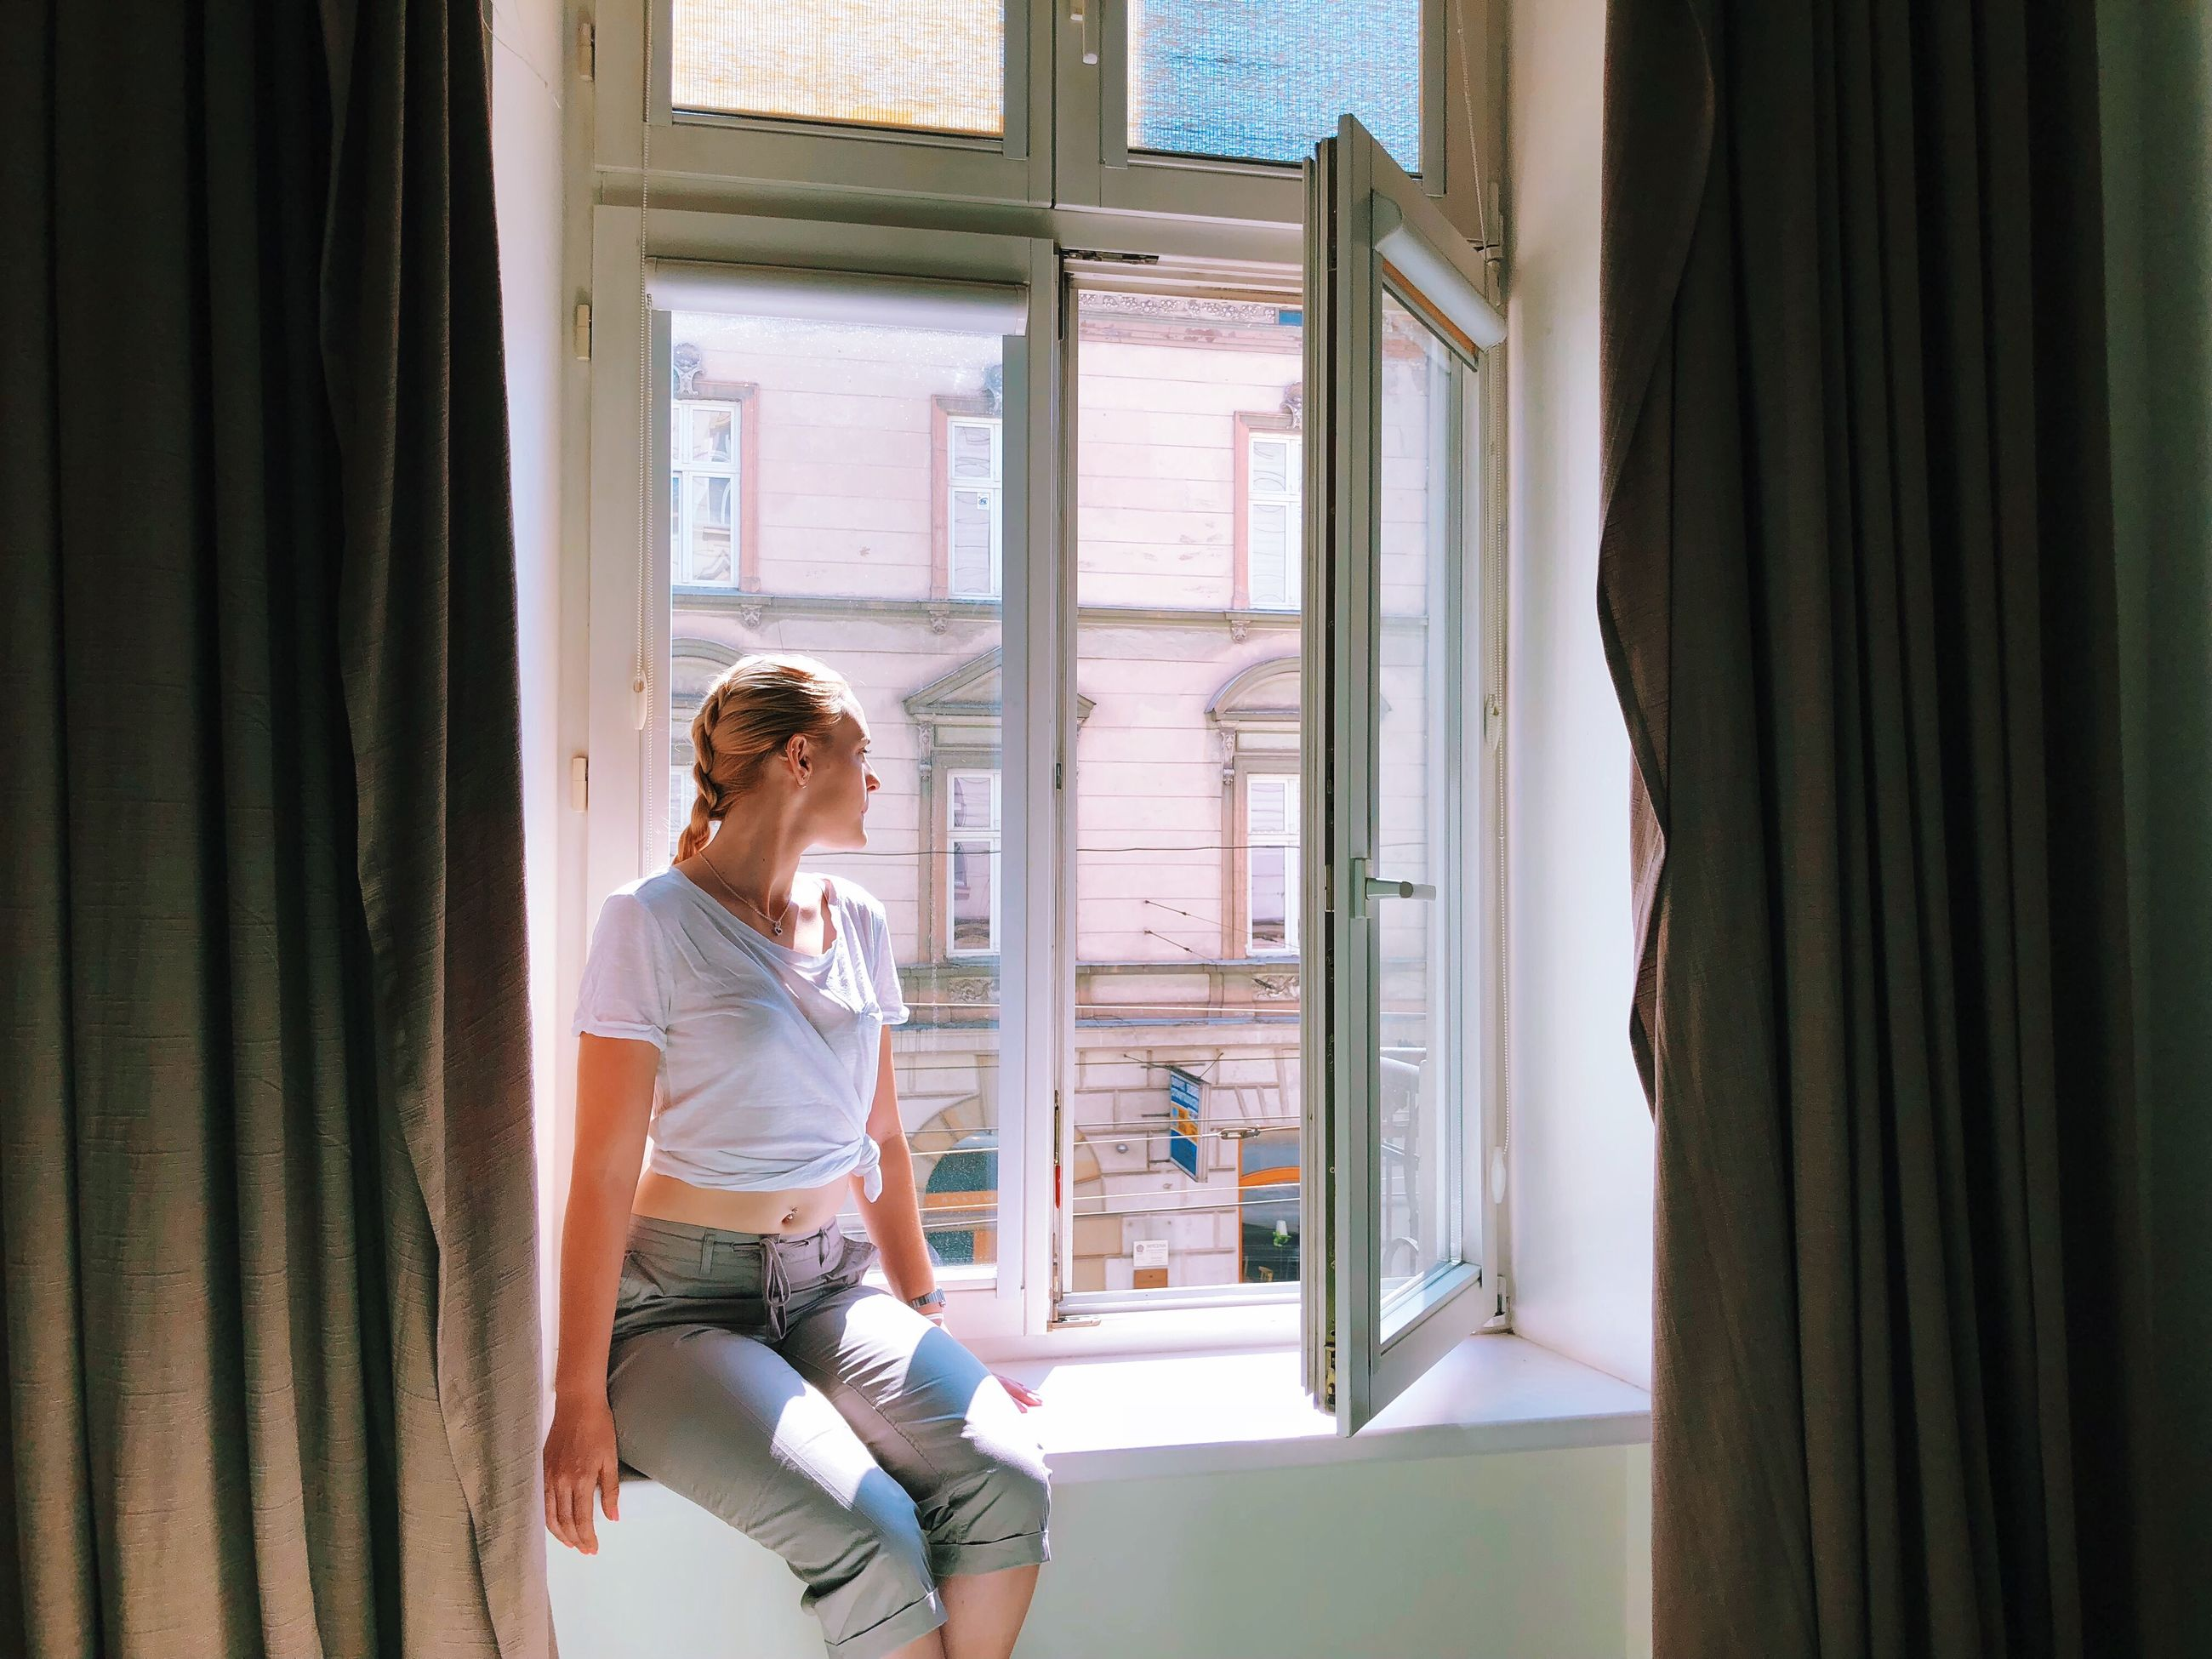 window, curtain, one person, casual clothing, real people, indoors, lifestyles, three quarter length, sitting, home interior, looking, adult, day, looking through window, women, young adult, leisure activity, young women, contemplation, hairstyle